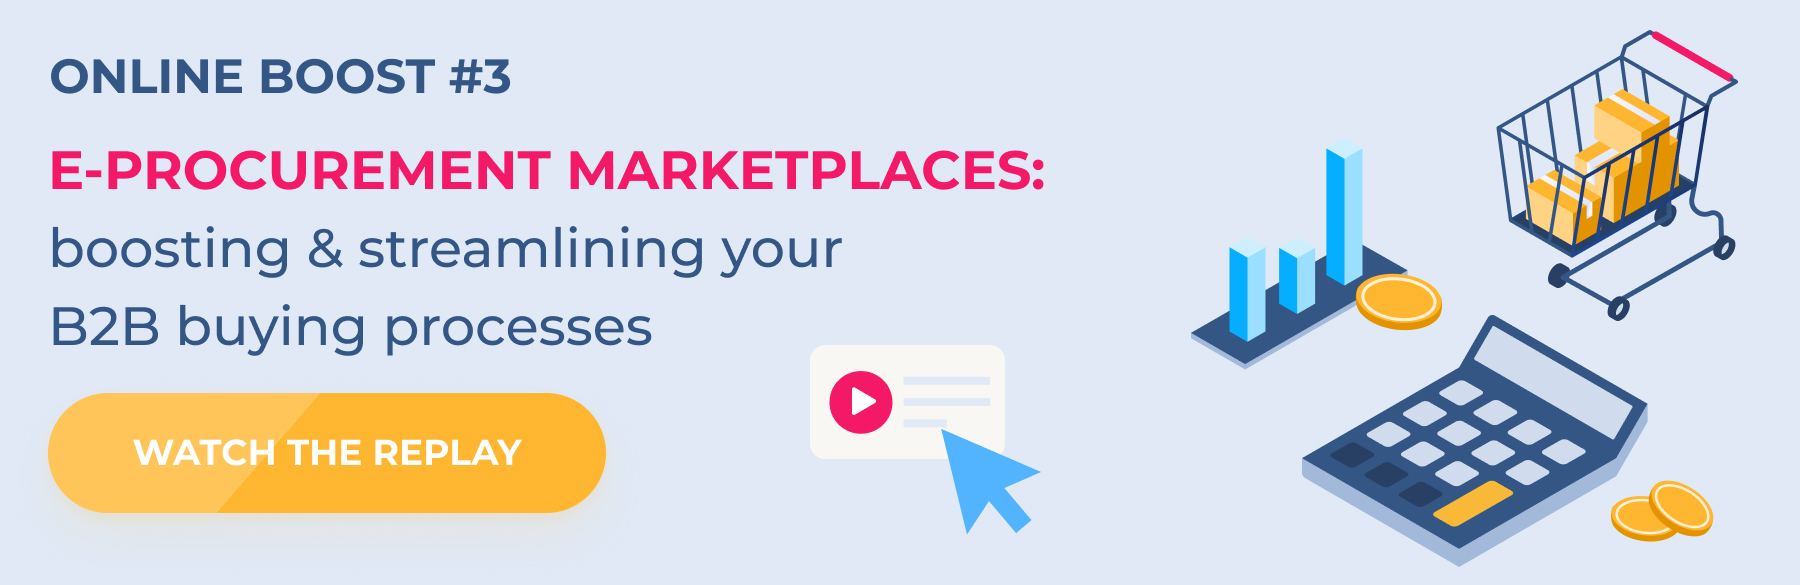 Online Boost #3 - E-Procurement Marketplaces : boosting and streamlining your B2B buying processes